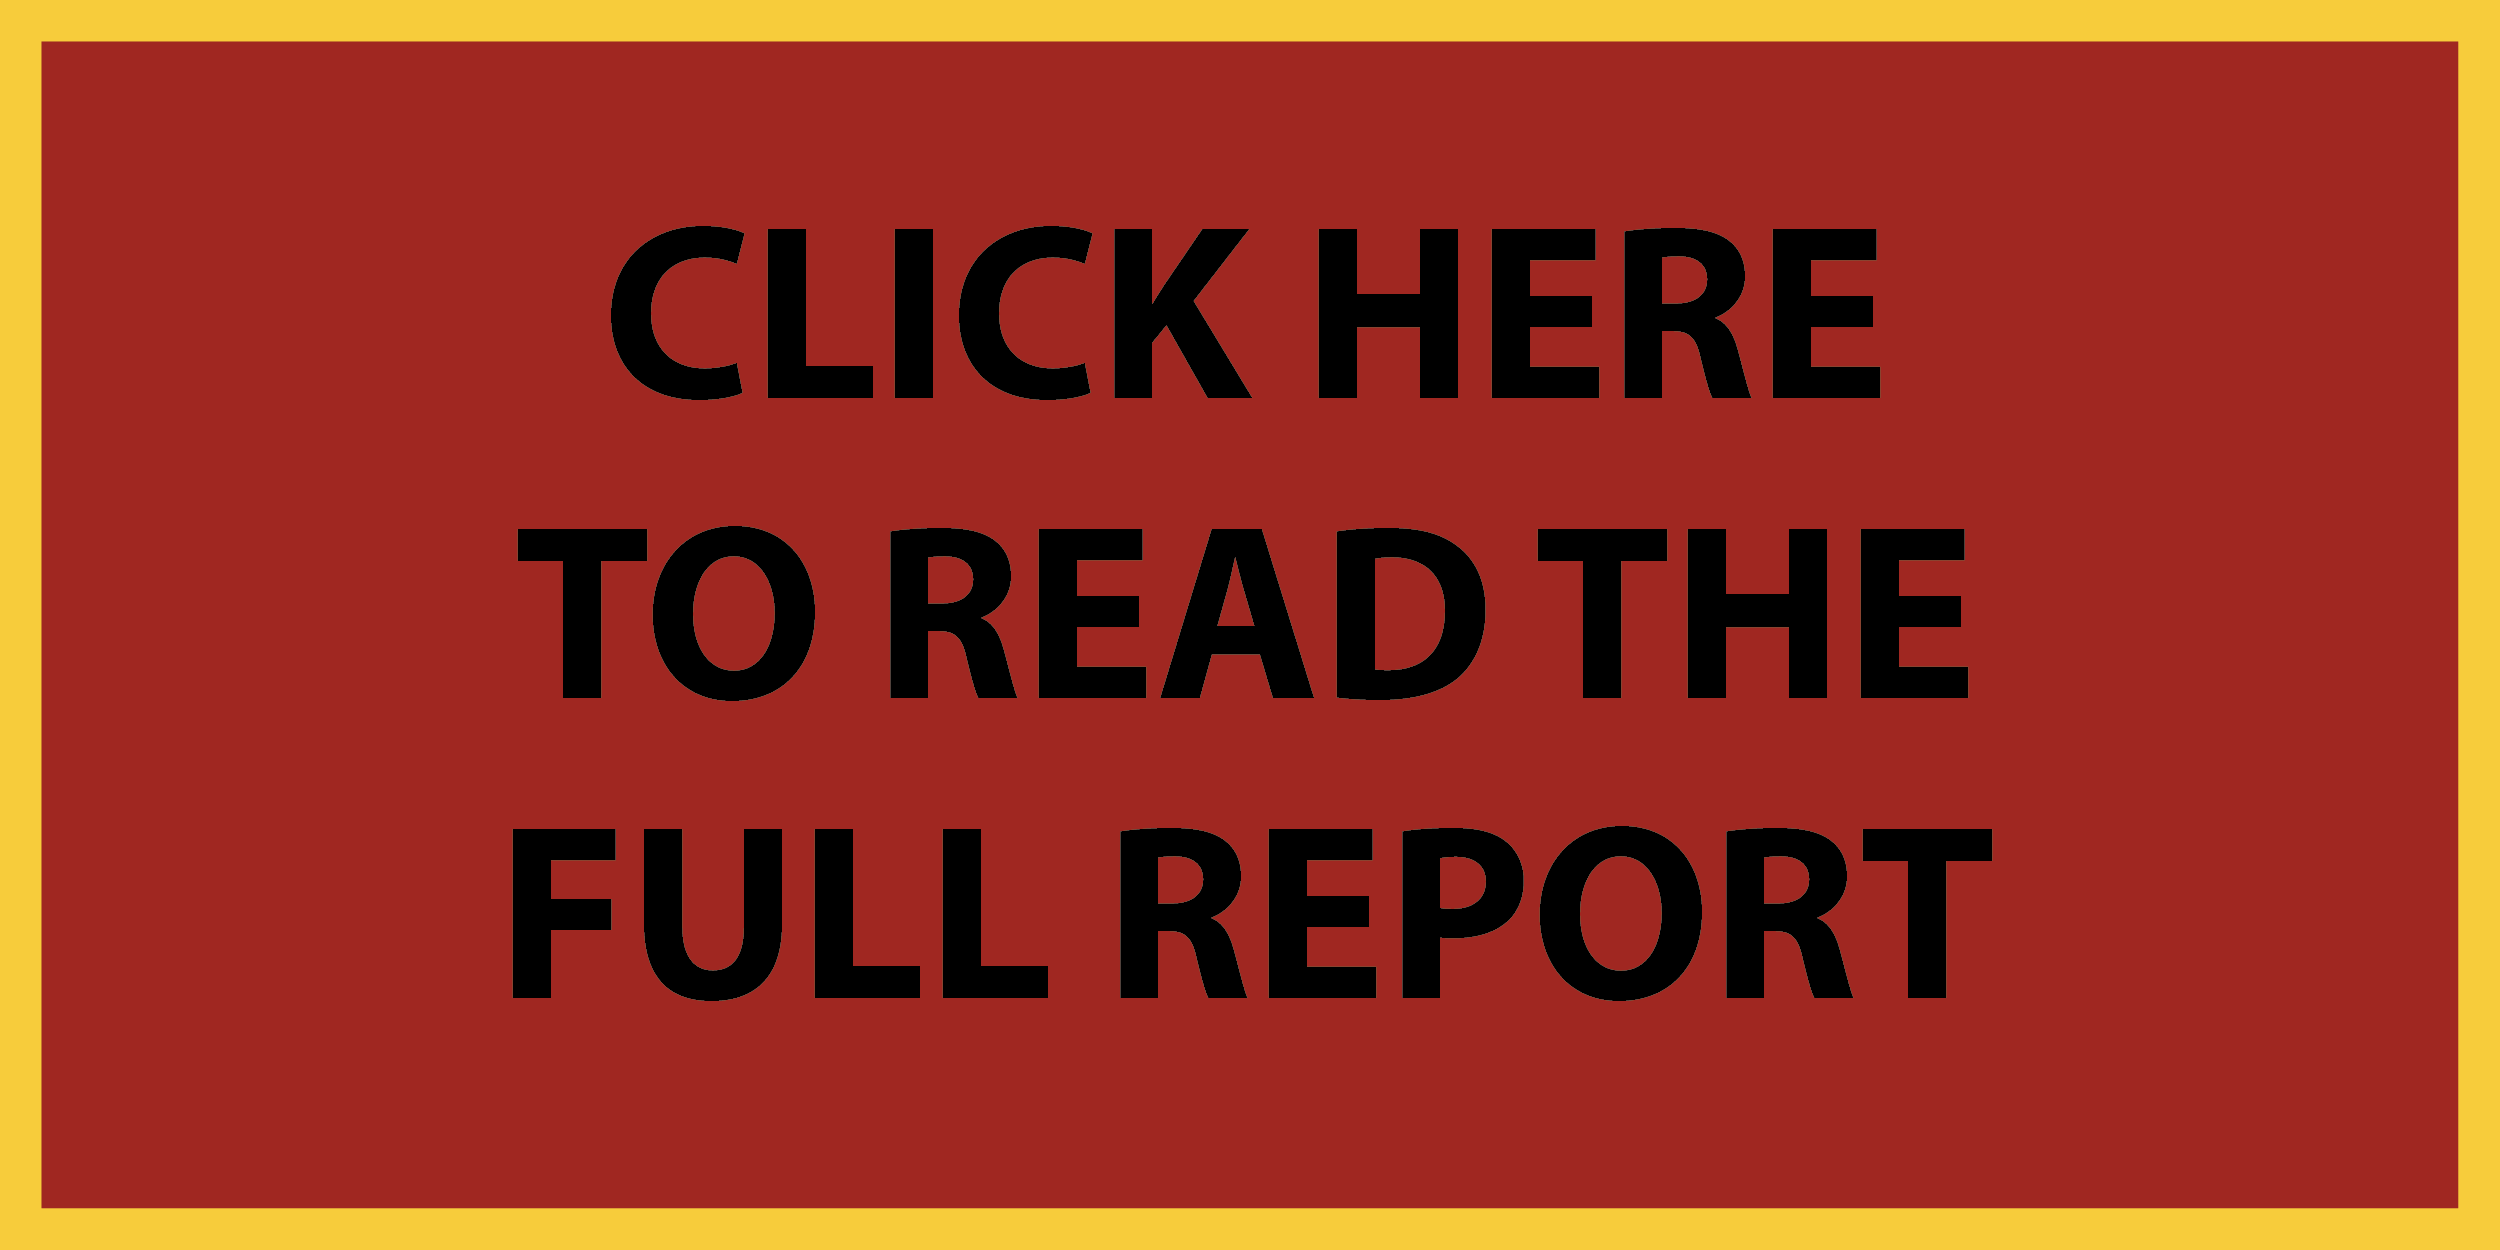 Website_Button_-_CLICK_HERE_TO_READ_THE_FULL_REPORT-01.png